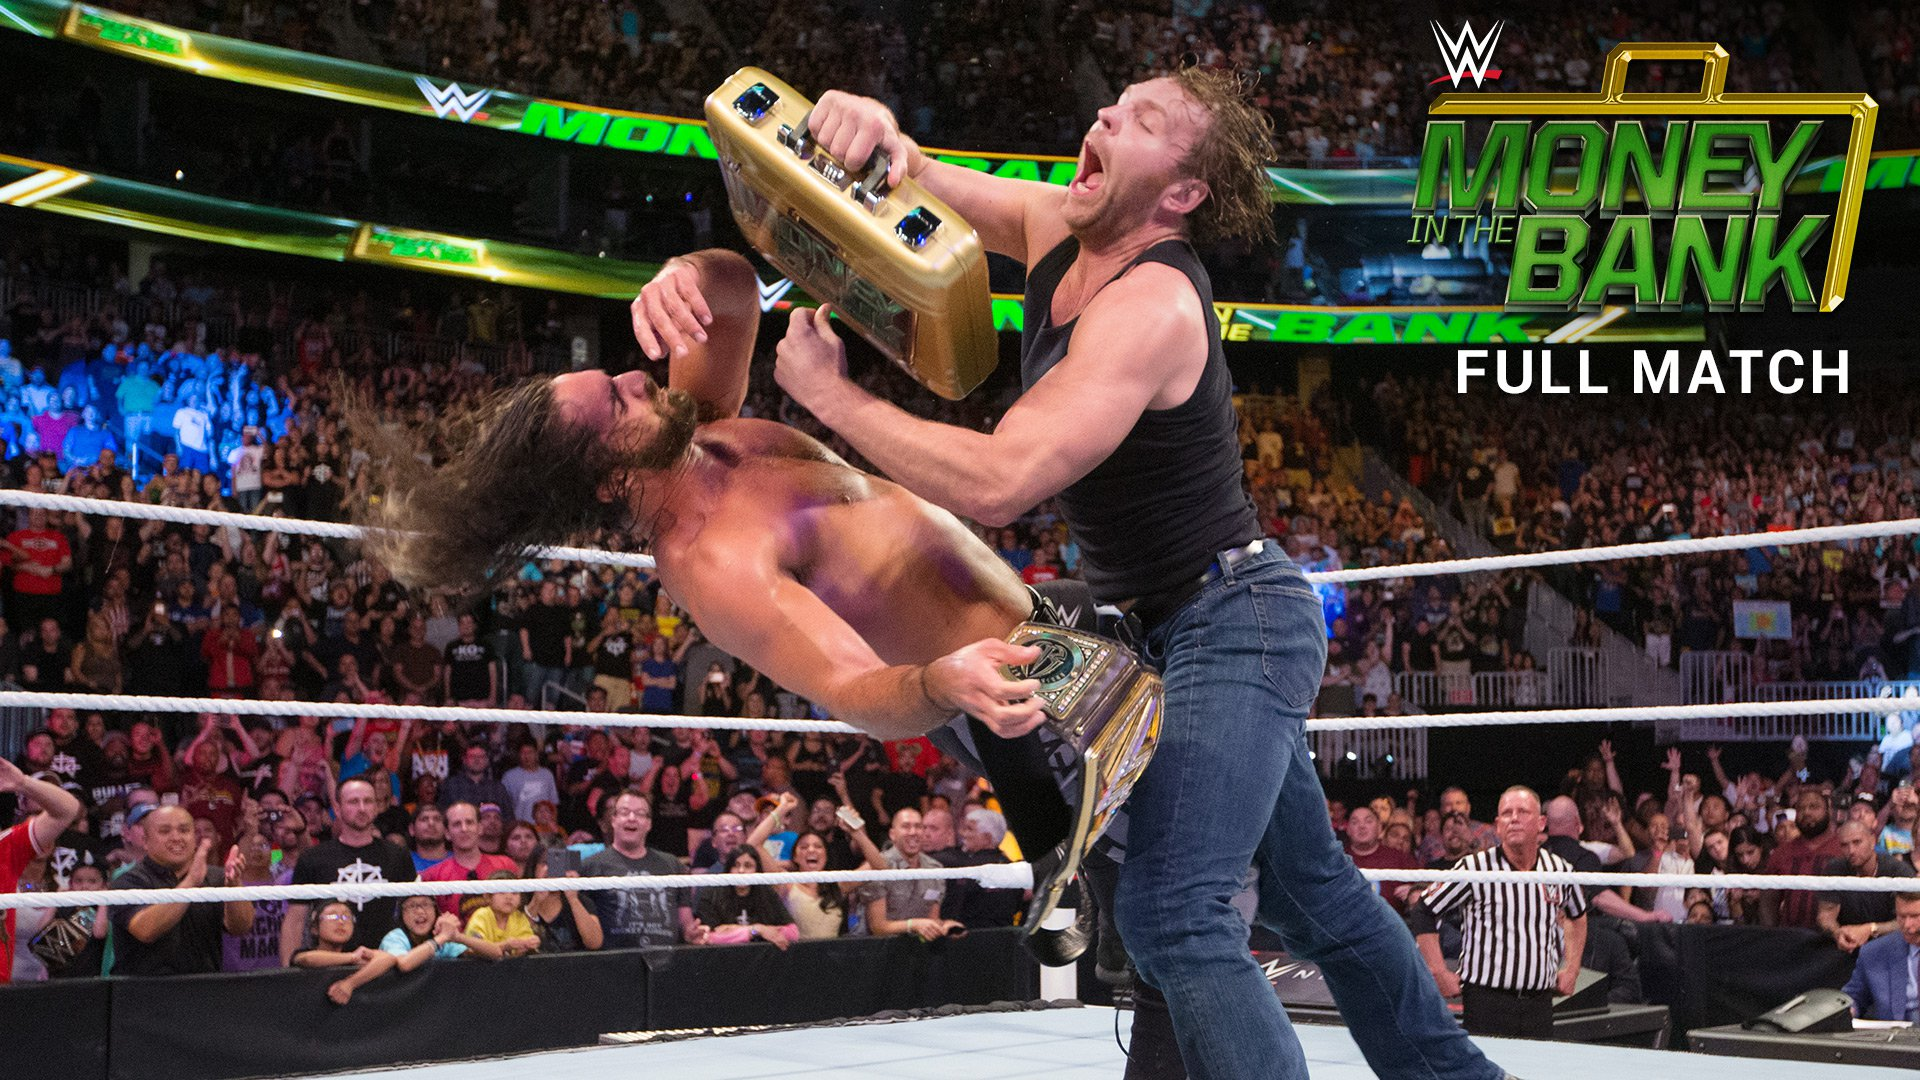 Roman Reigns vs. Seth Rollins - WWE World Heavyweight Title Match: Money in the Bank 2016 (Full Match - WWE Network Exclusive)